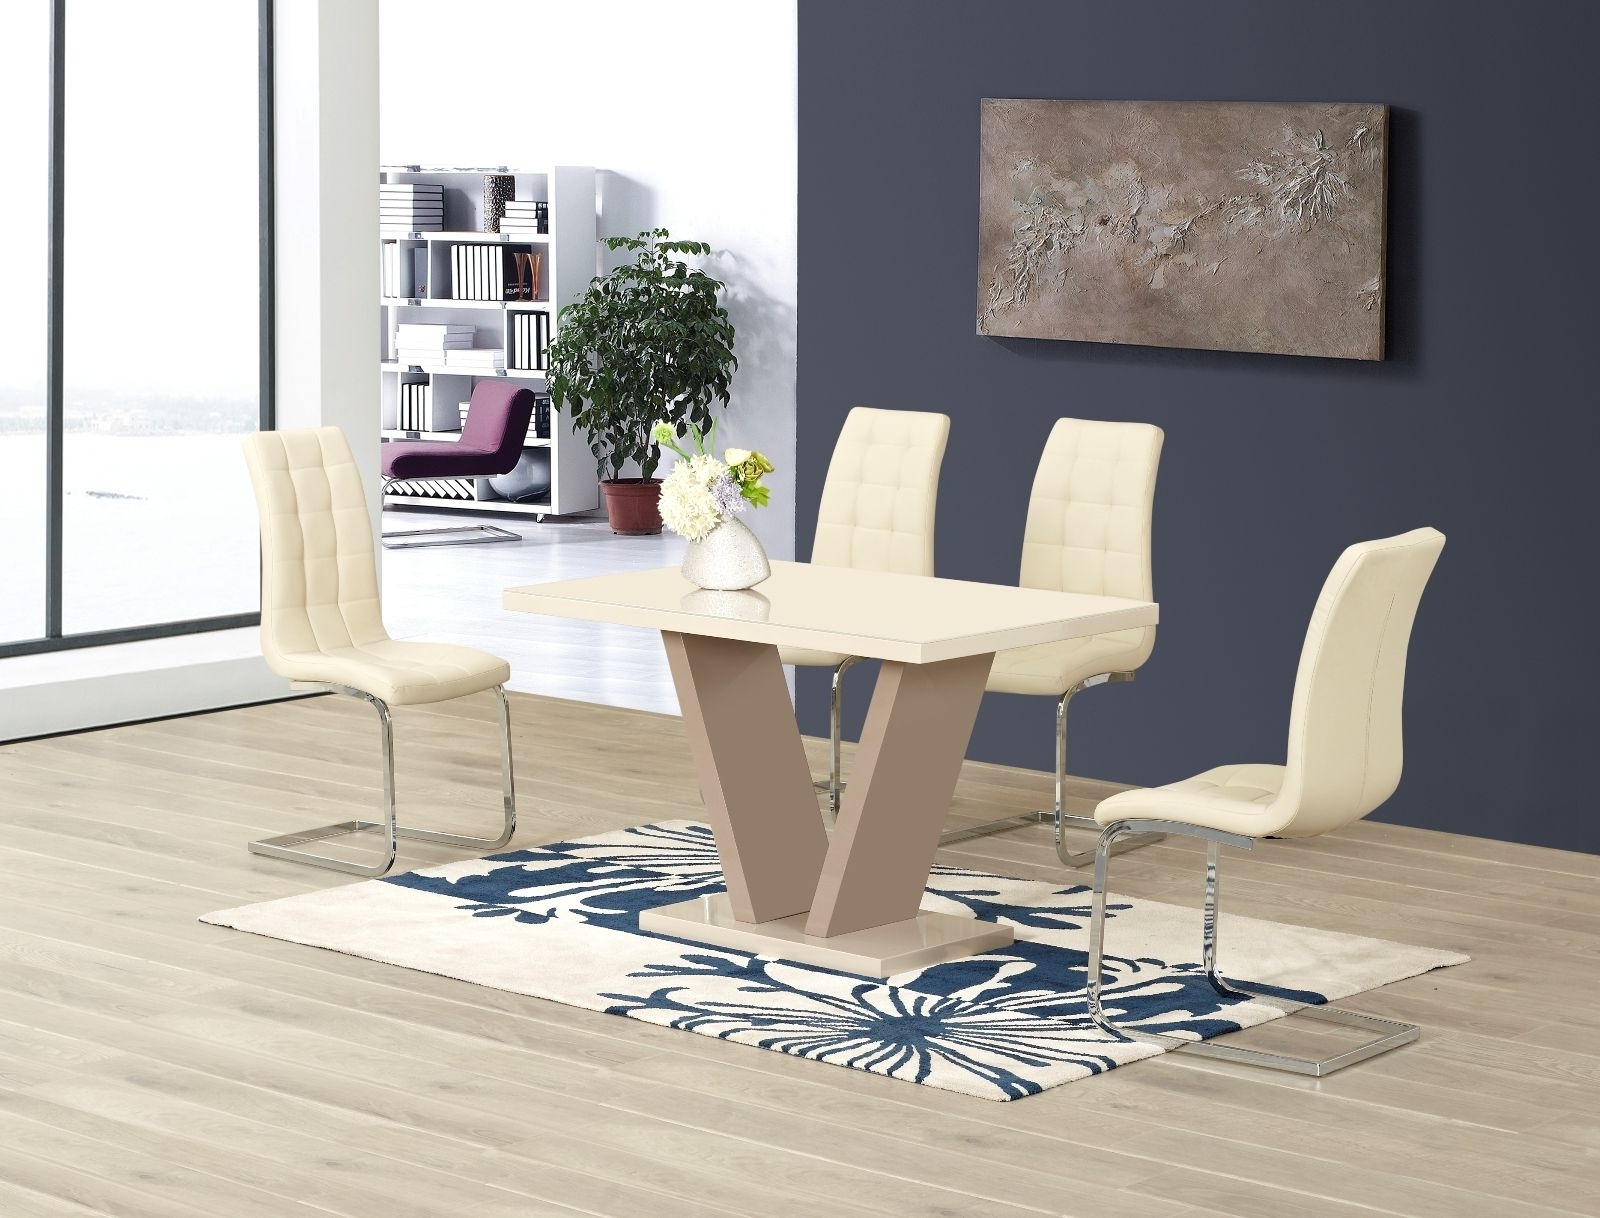 Ga Vico Cream Gloss Designer 120 Cm Dining Set & 4 Araceli Or Sicily For Well Known High Gloss Cream Dining Tables (Gallery 7 of 25)